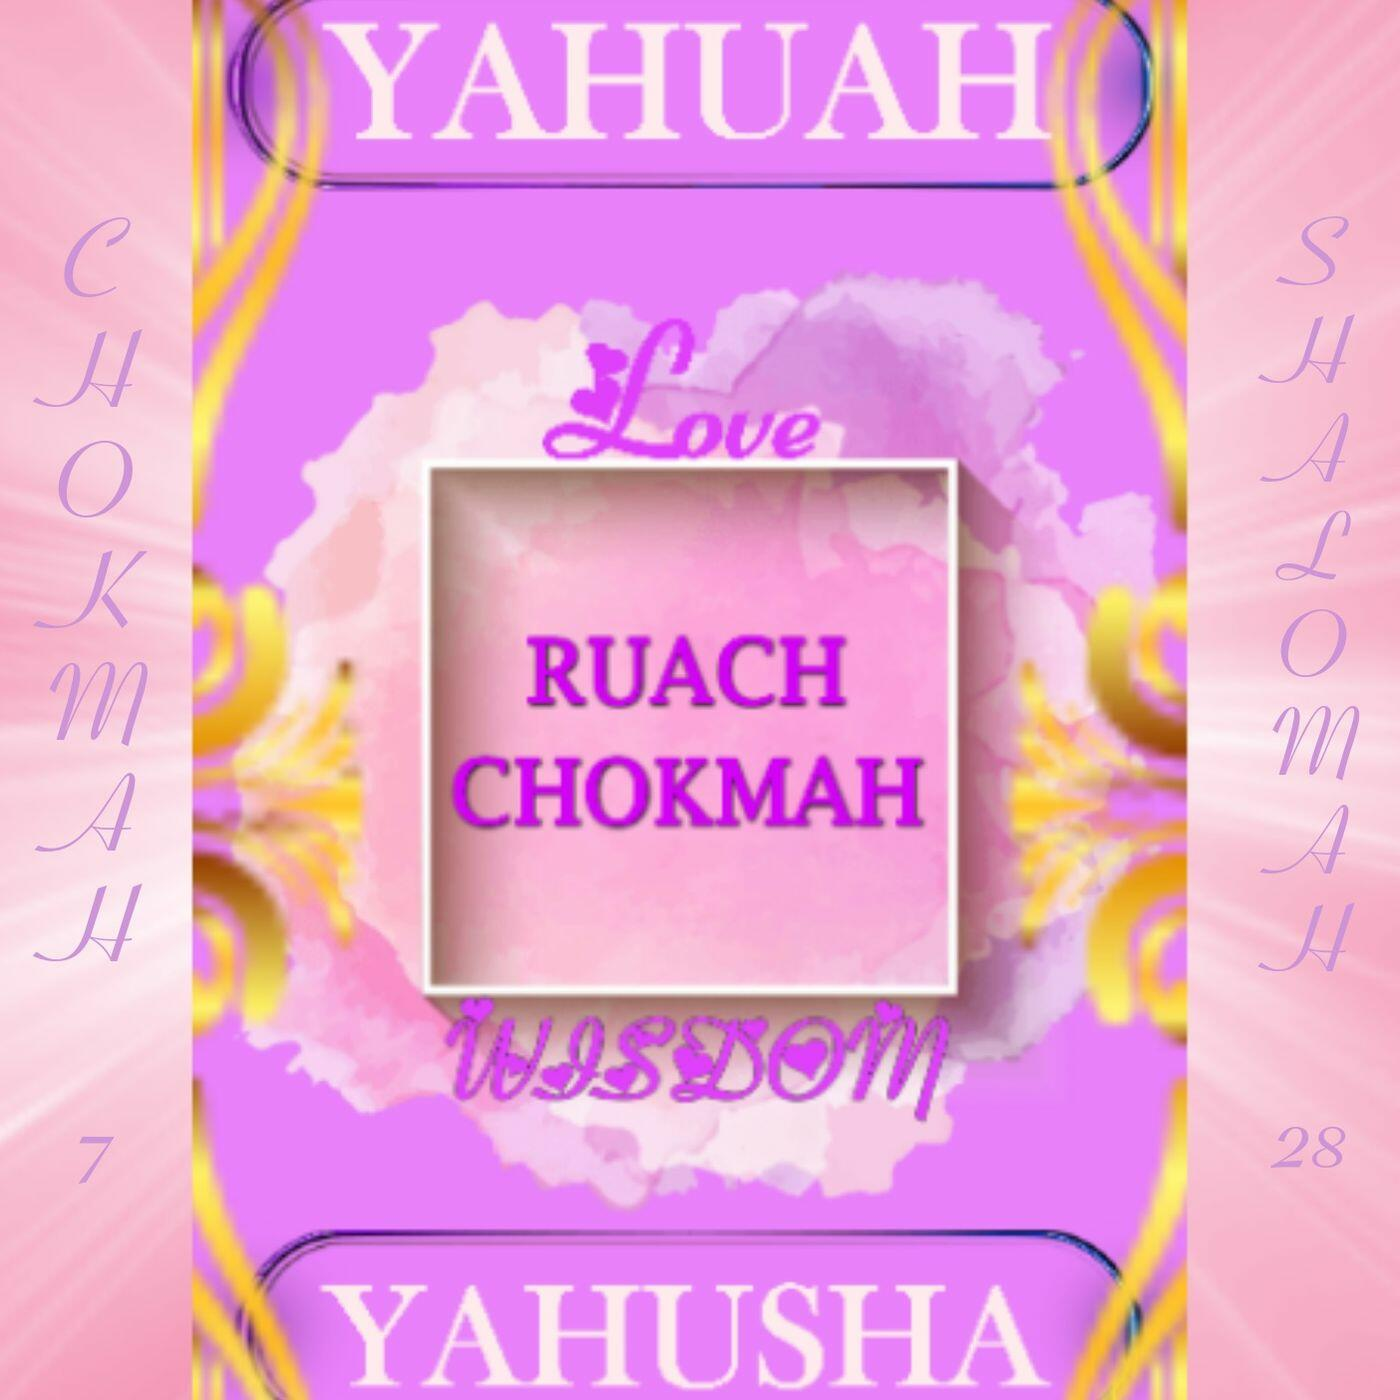 Listen Free to [SHABBAT SHALOM | YOUR'S HIS THE KINGDOM on